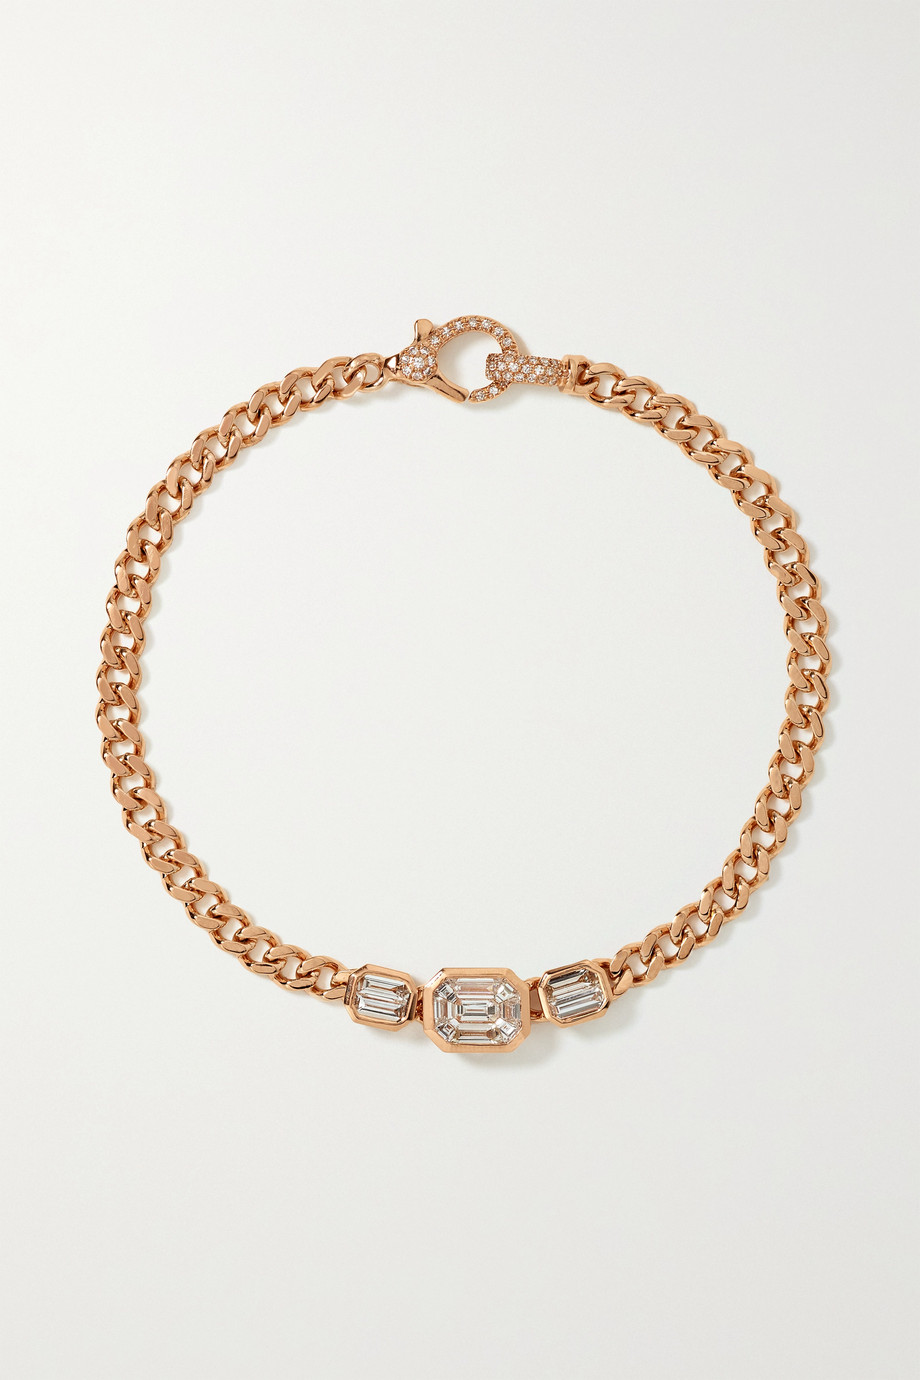 SHAY Bracelet en or rose 18 carats et diamants